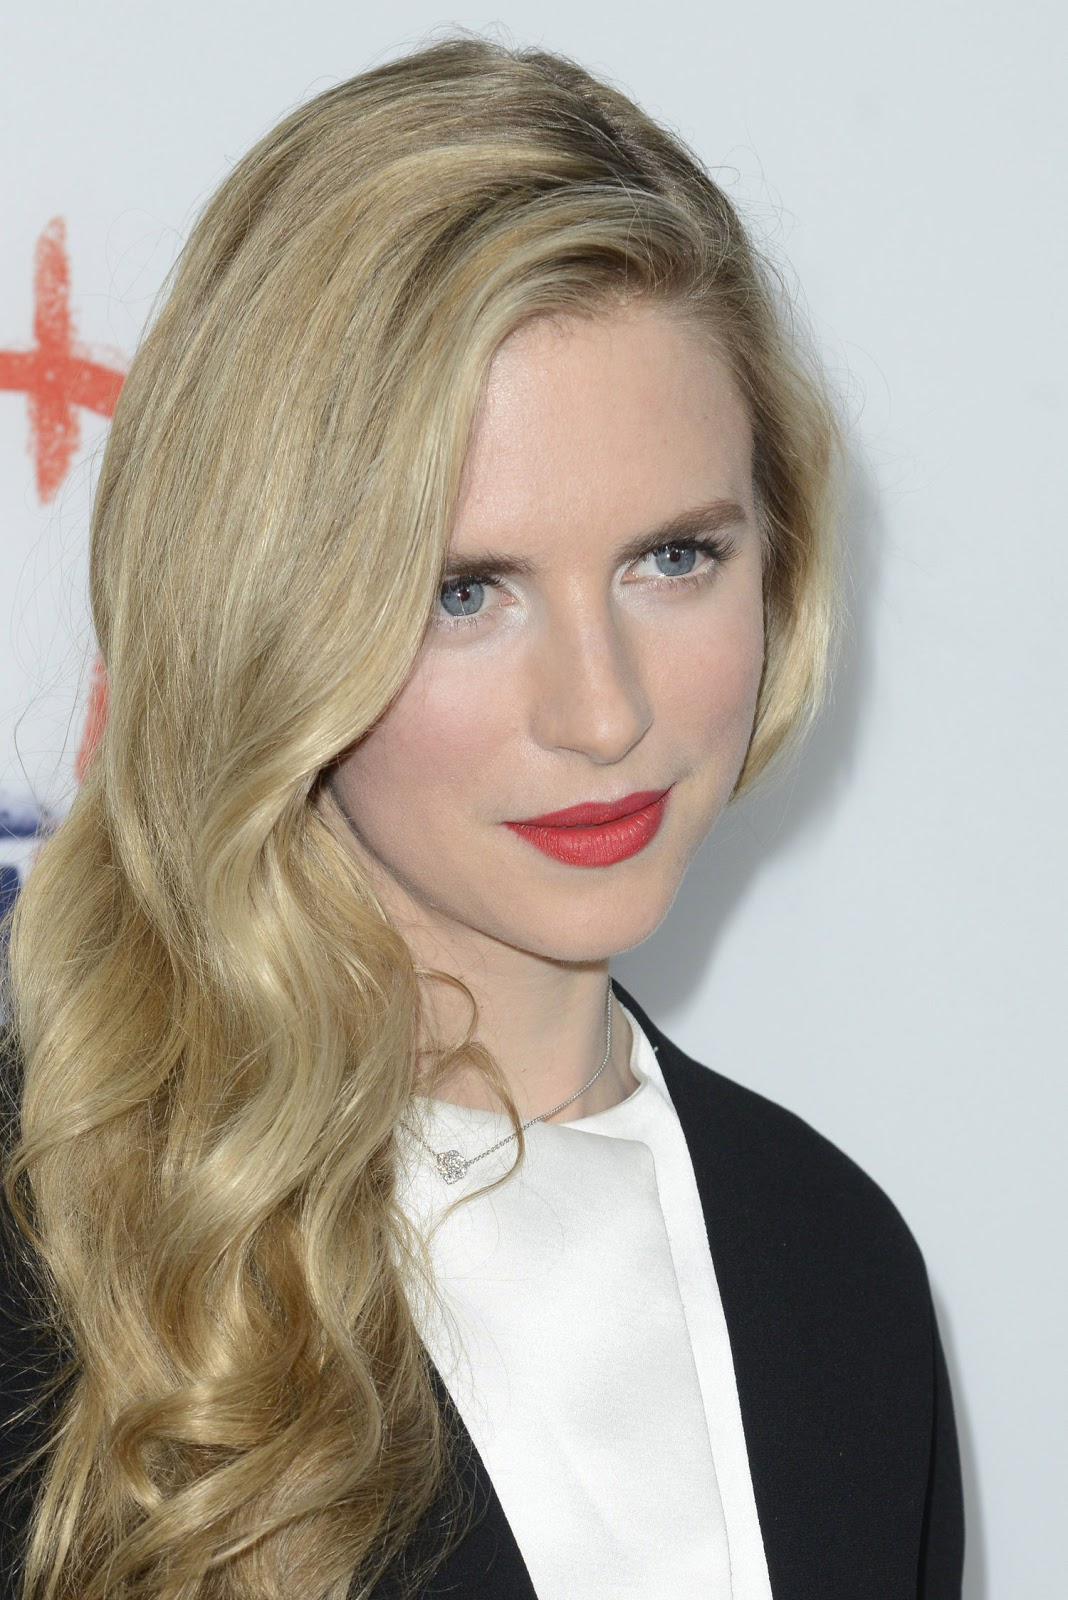 Brit marling in sound of my voice 2013 - 3 6